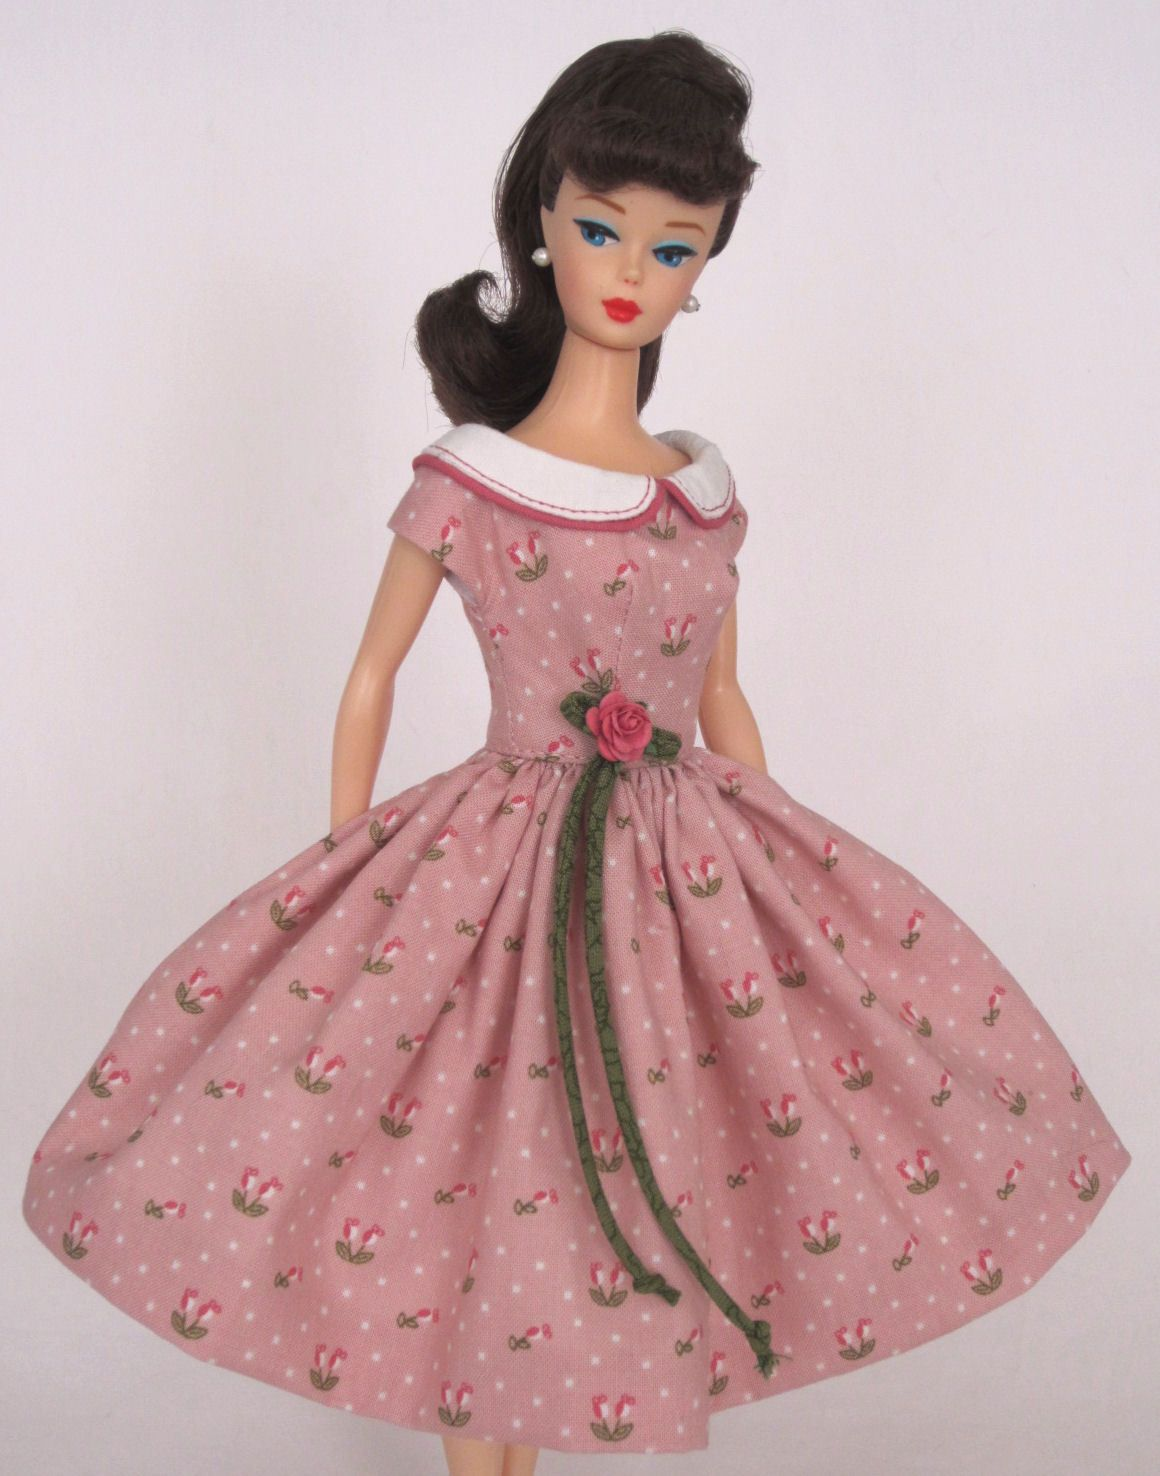 Barbie Doll Dress Reproduction Repro Barbie Clothes by Eggie! This ...